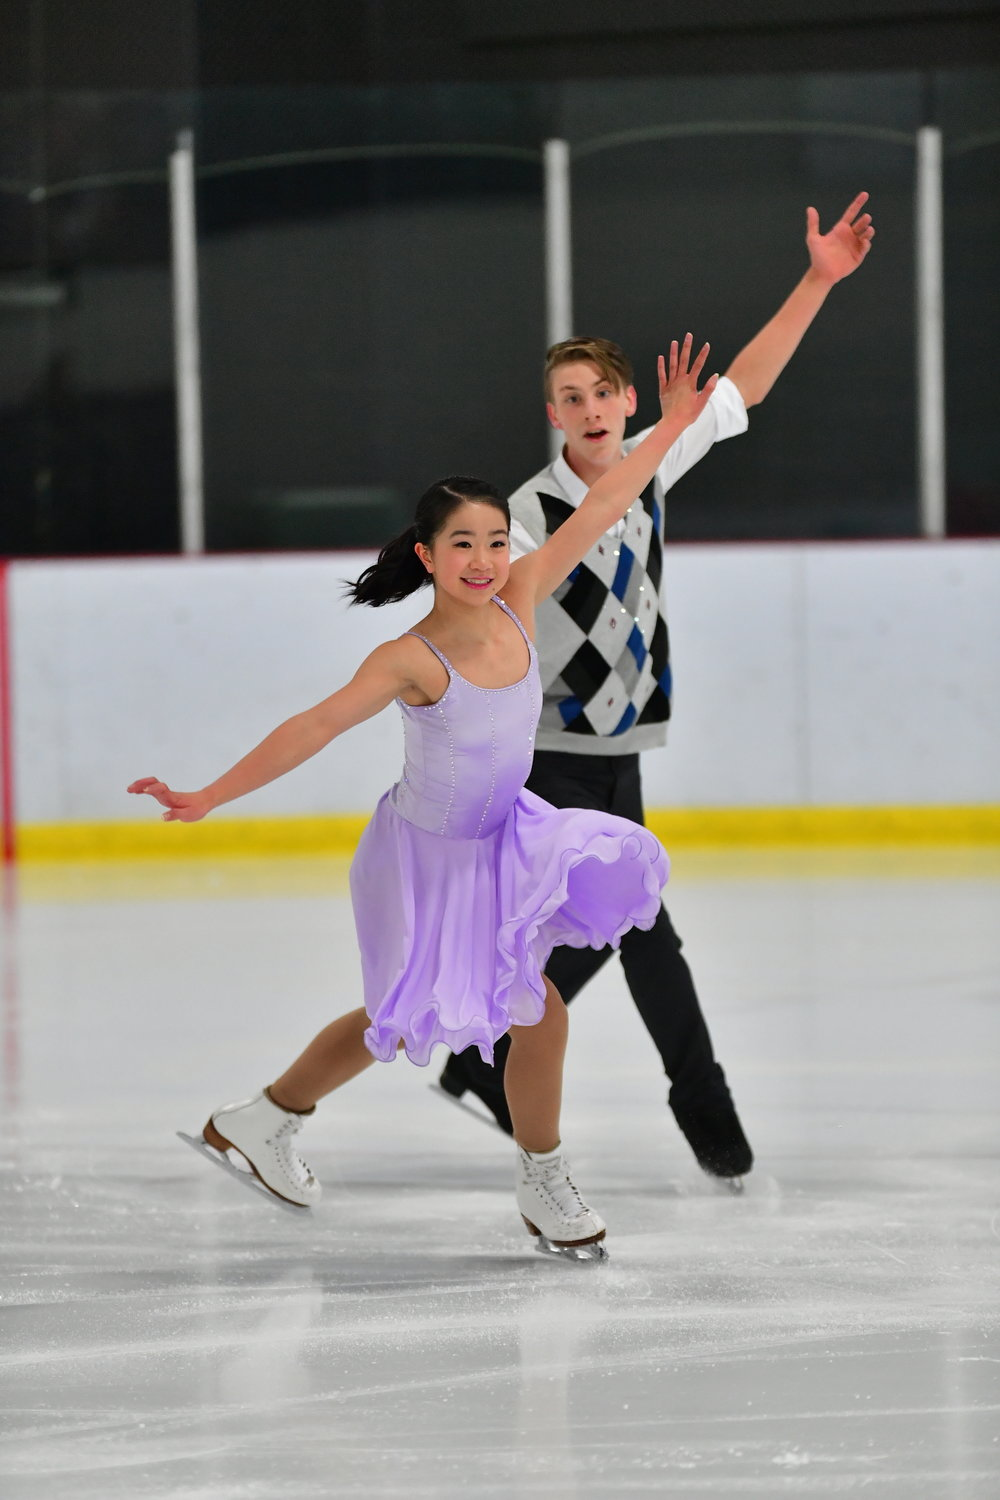 Kiera & Mathew - Skate Canada Challenge Pre-Novice Freedance Photo 1 (1).jpg